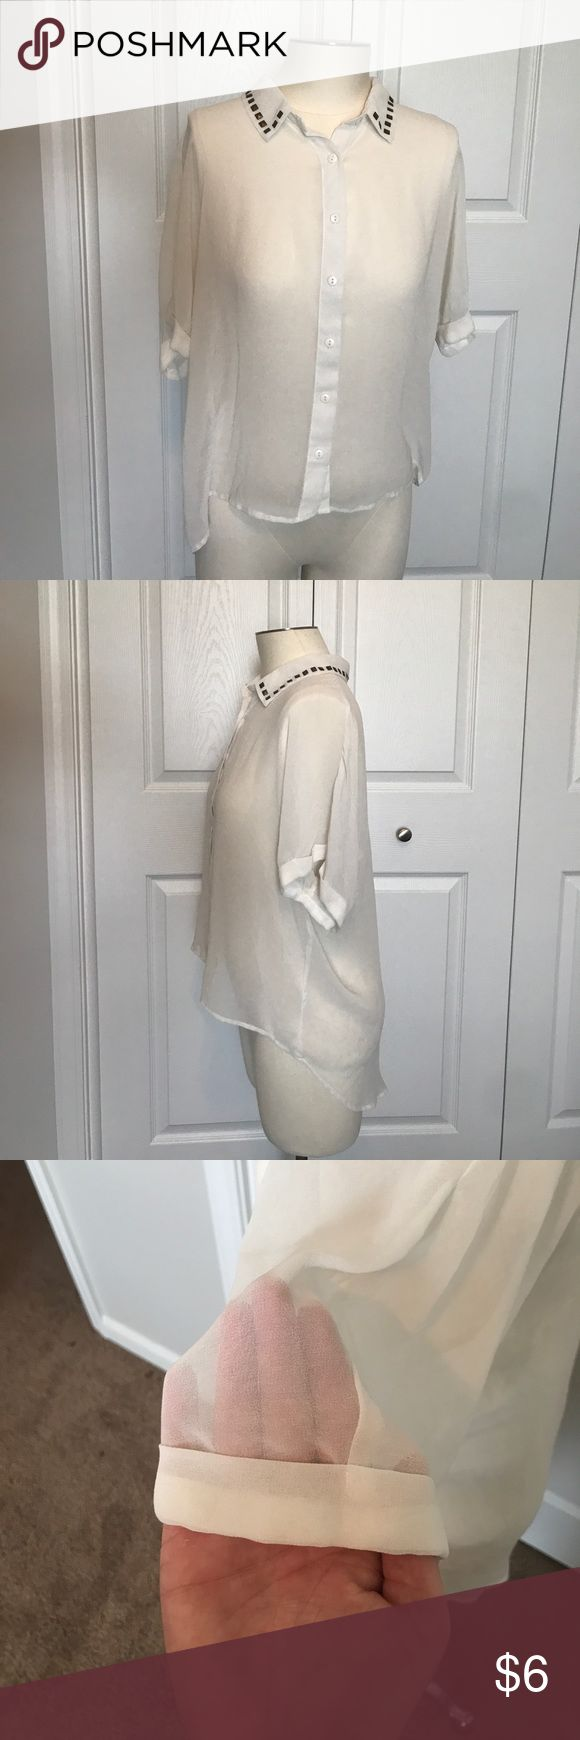 Chiffon Hi-lo Button Down Studded Shirt Cream chiffon shirt. I have a picture with my hand to show how see thru it is. It has antiqued studs all the way around the collar. The short sleeves are cuffed. Size L. Forever 21 Tops Button Down Shirts